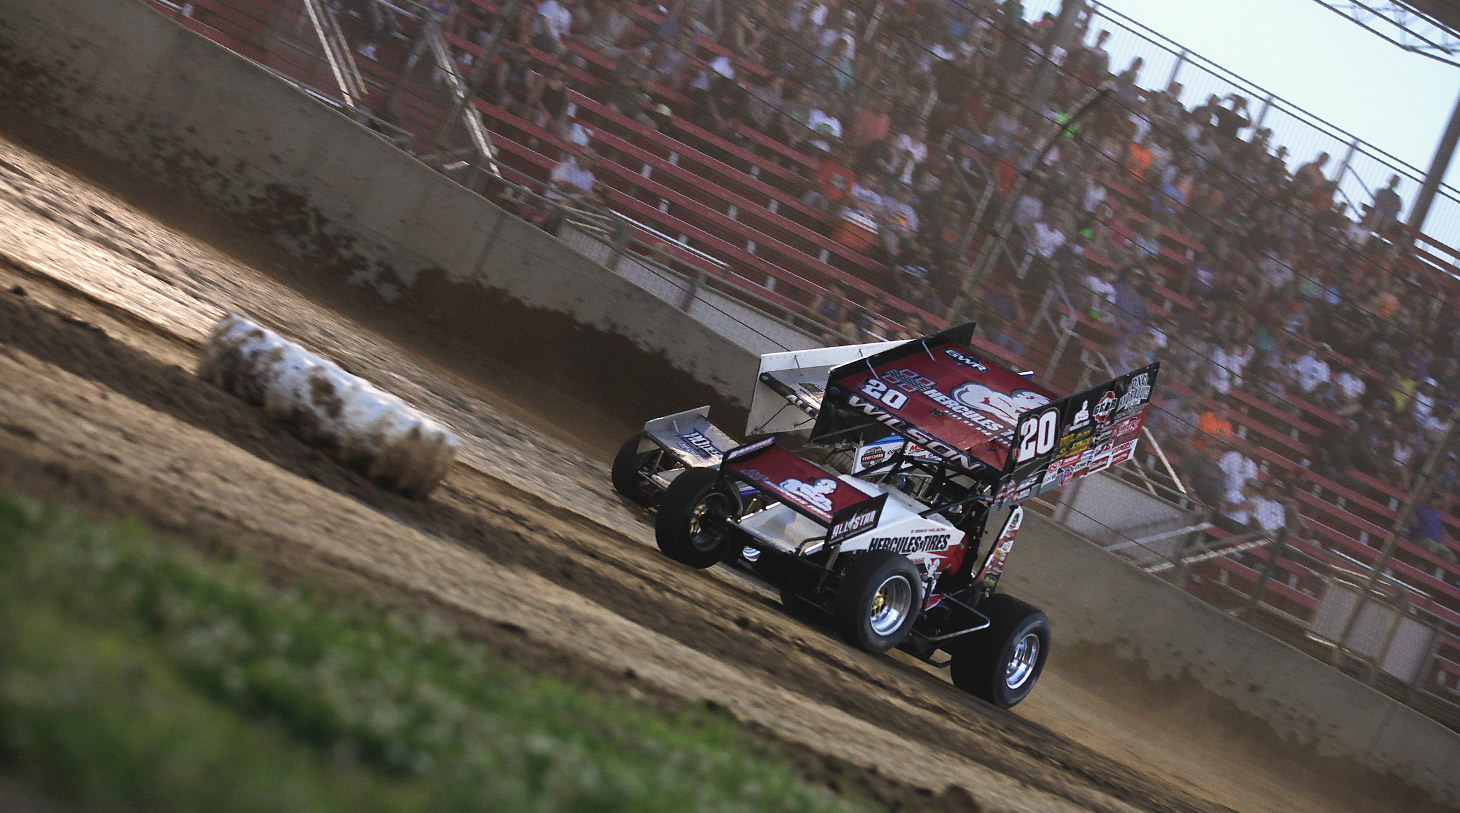 Greg Wilson has captured over 100 sprint car feature wins including 25 All Star victories. (Jeffrey Turford / TDP)